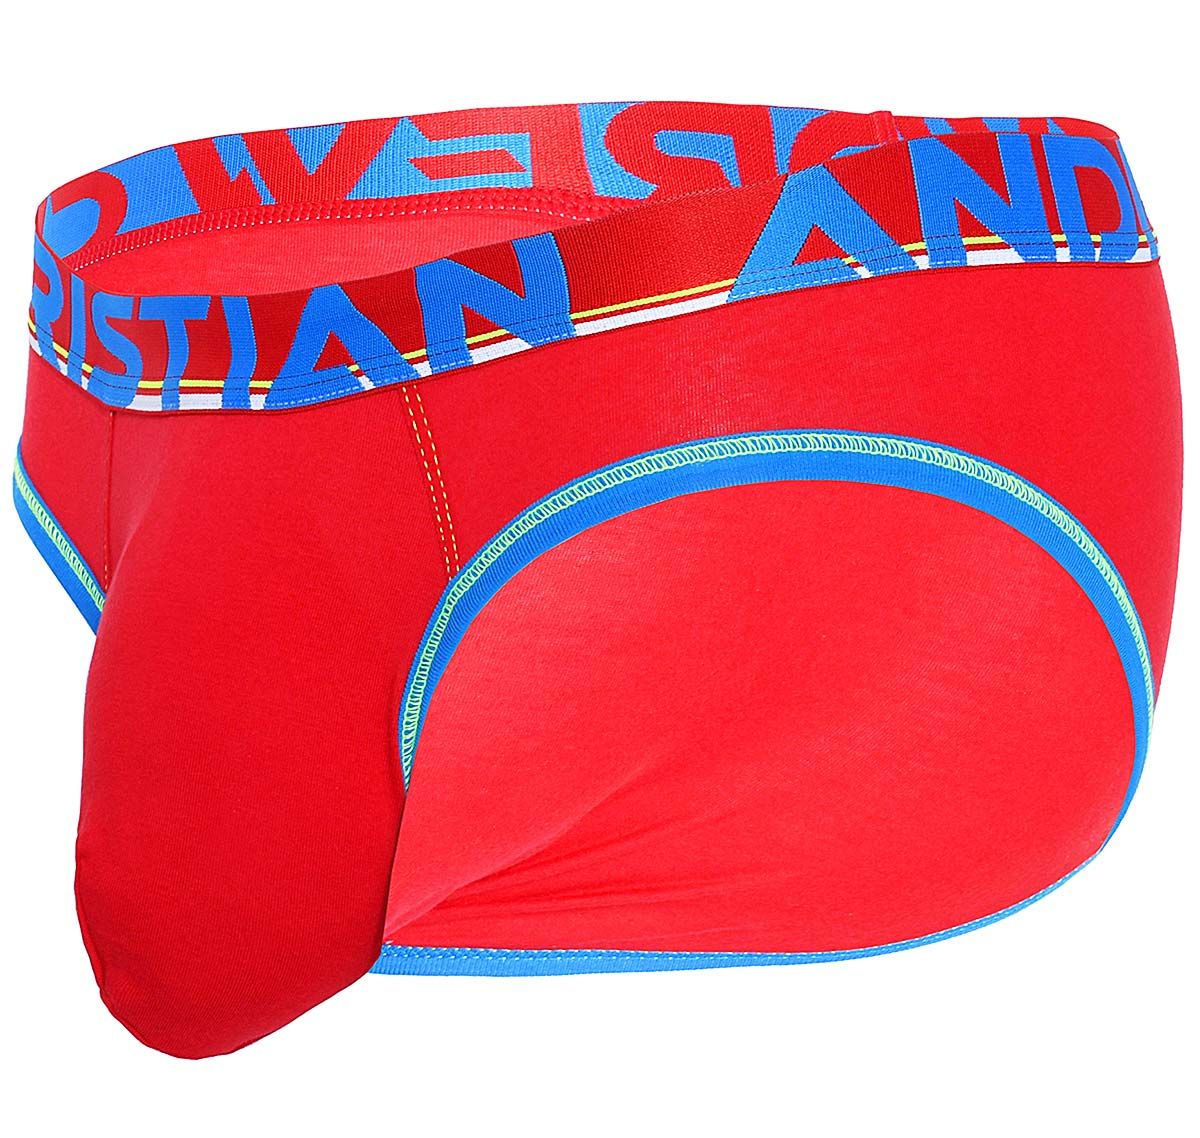 Andrew Christian Slip ALMOST NAKED COTTON BRIEF 91434, rouge